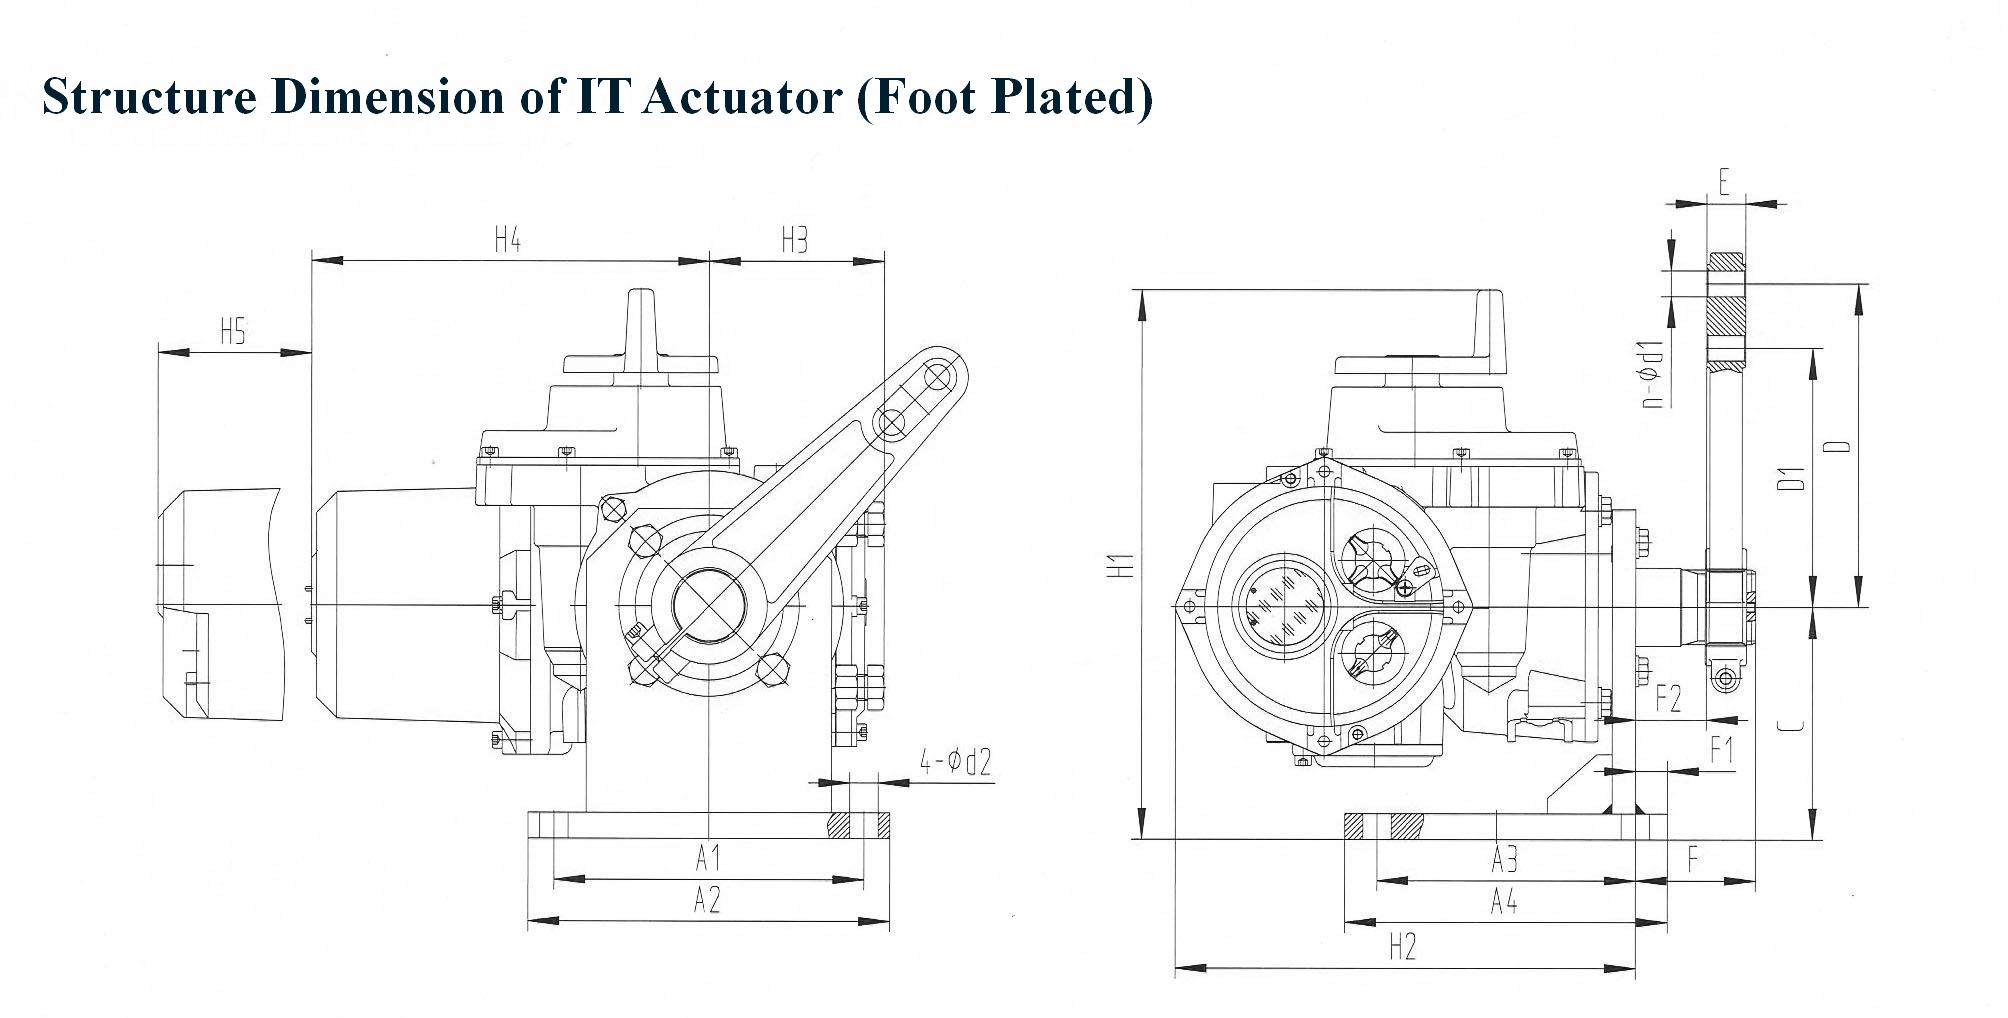 Bernard Actuator Wiring Diagram Free Download Relay Tianjin Freya Automation Technology Co Ltd At